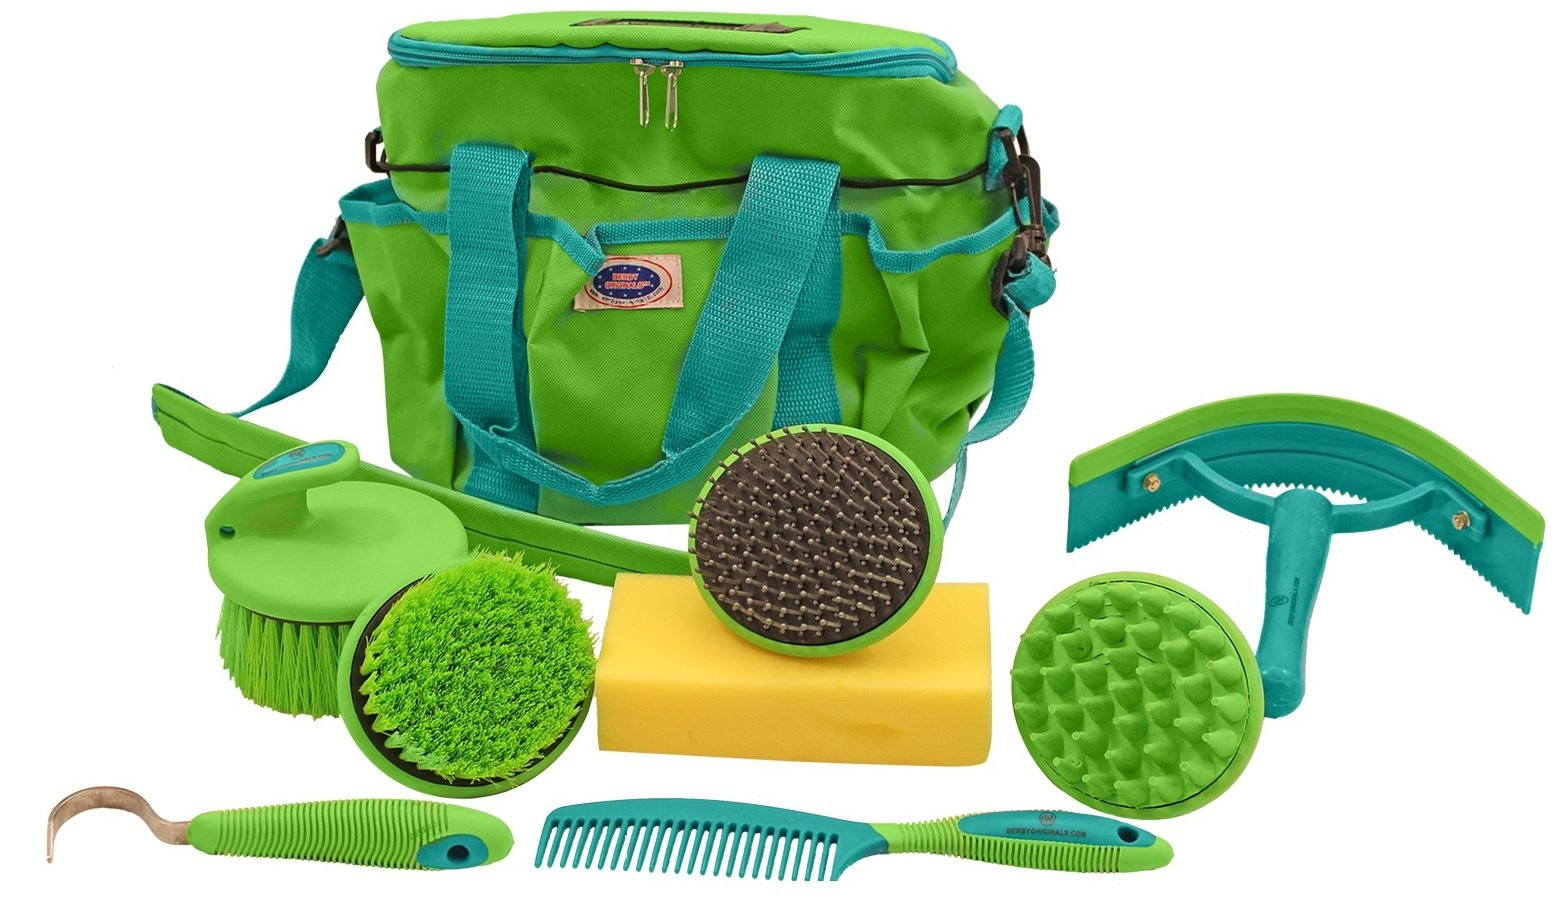 Derby Premium Comfort 9 Item Horse Grooming Kit (Turquoise/Lime Green)